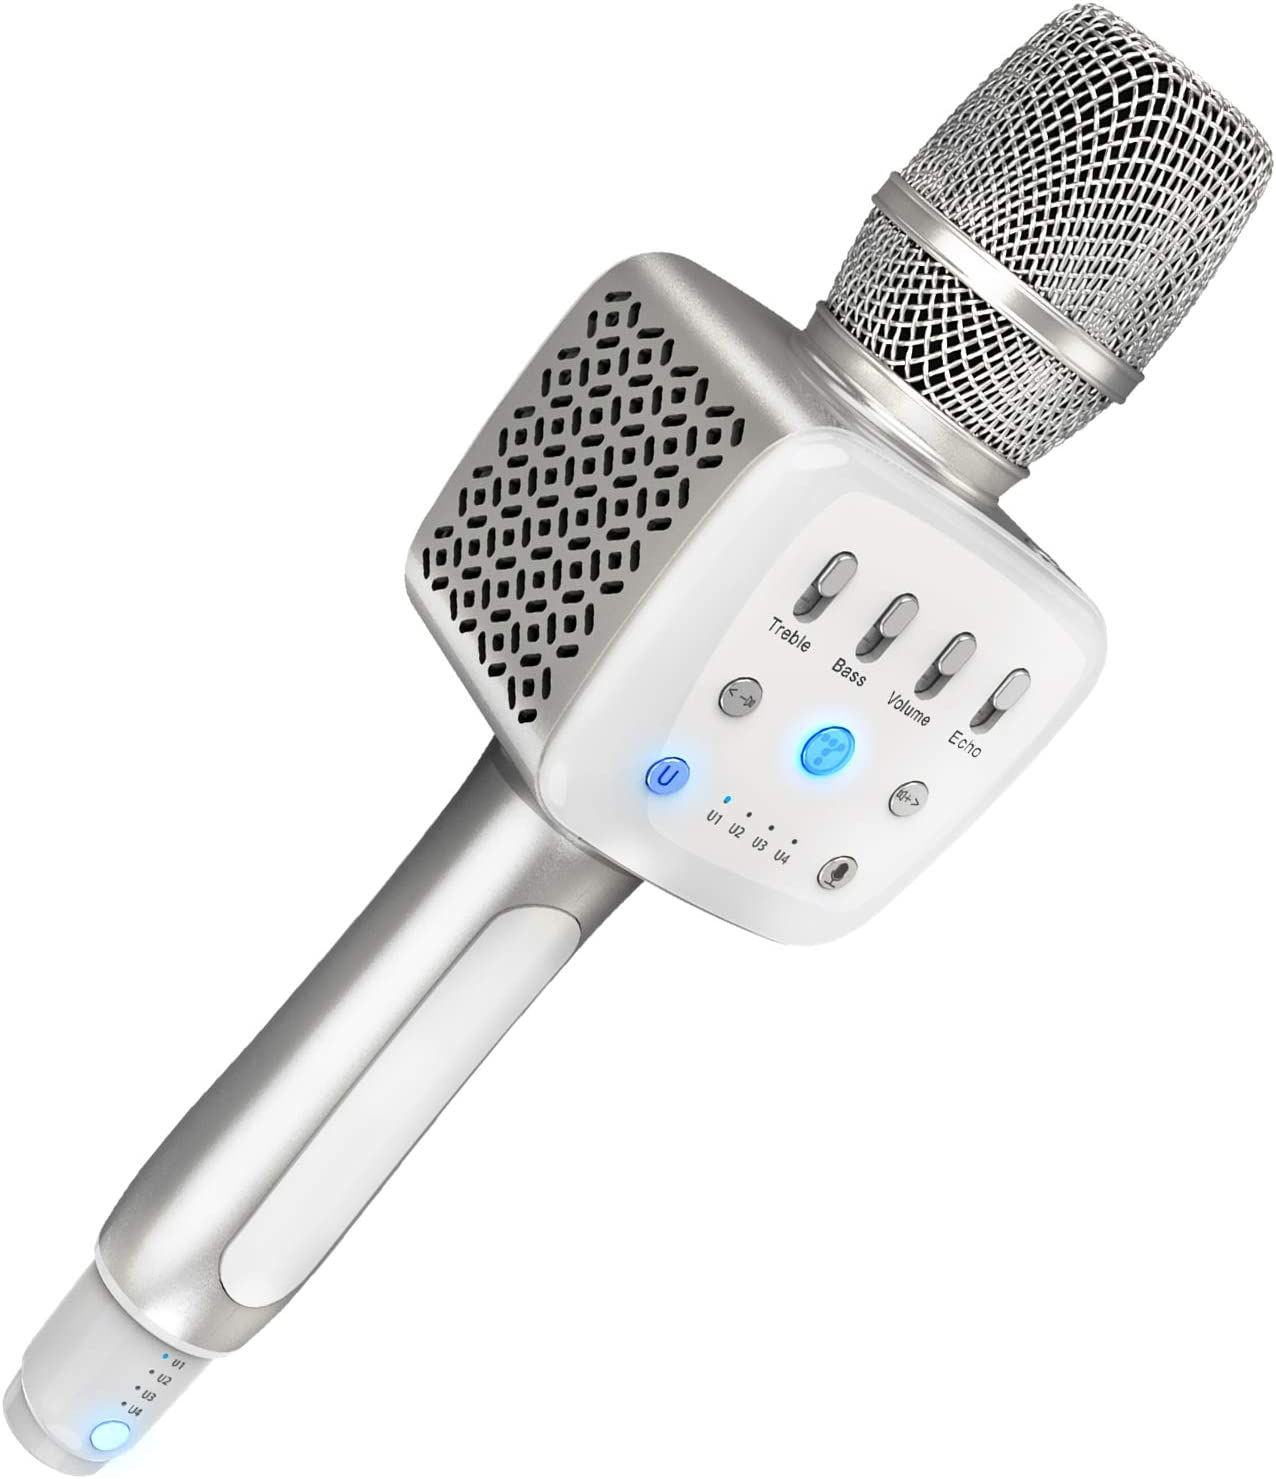 TOSING V2 Wireless Bluetooth Karaoke Microphone,3-in-1 Portable Handheld karaoke Mic New Year Gift Home Party Birthday Speaker Machine for iPhone/Android/iPad/Sony, PC and All Smartphone (Plata)